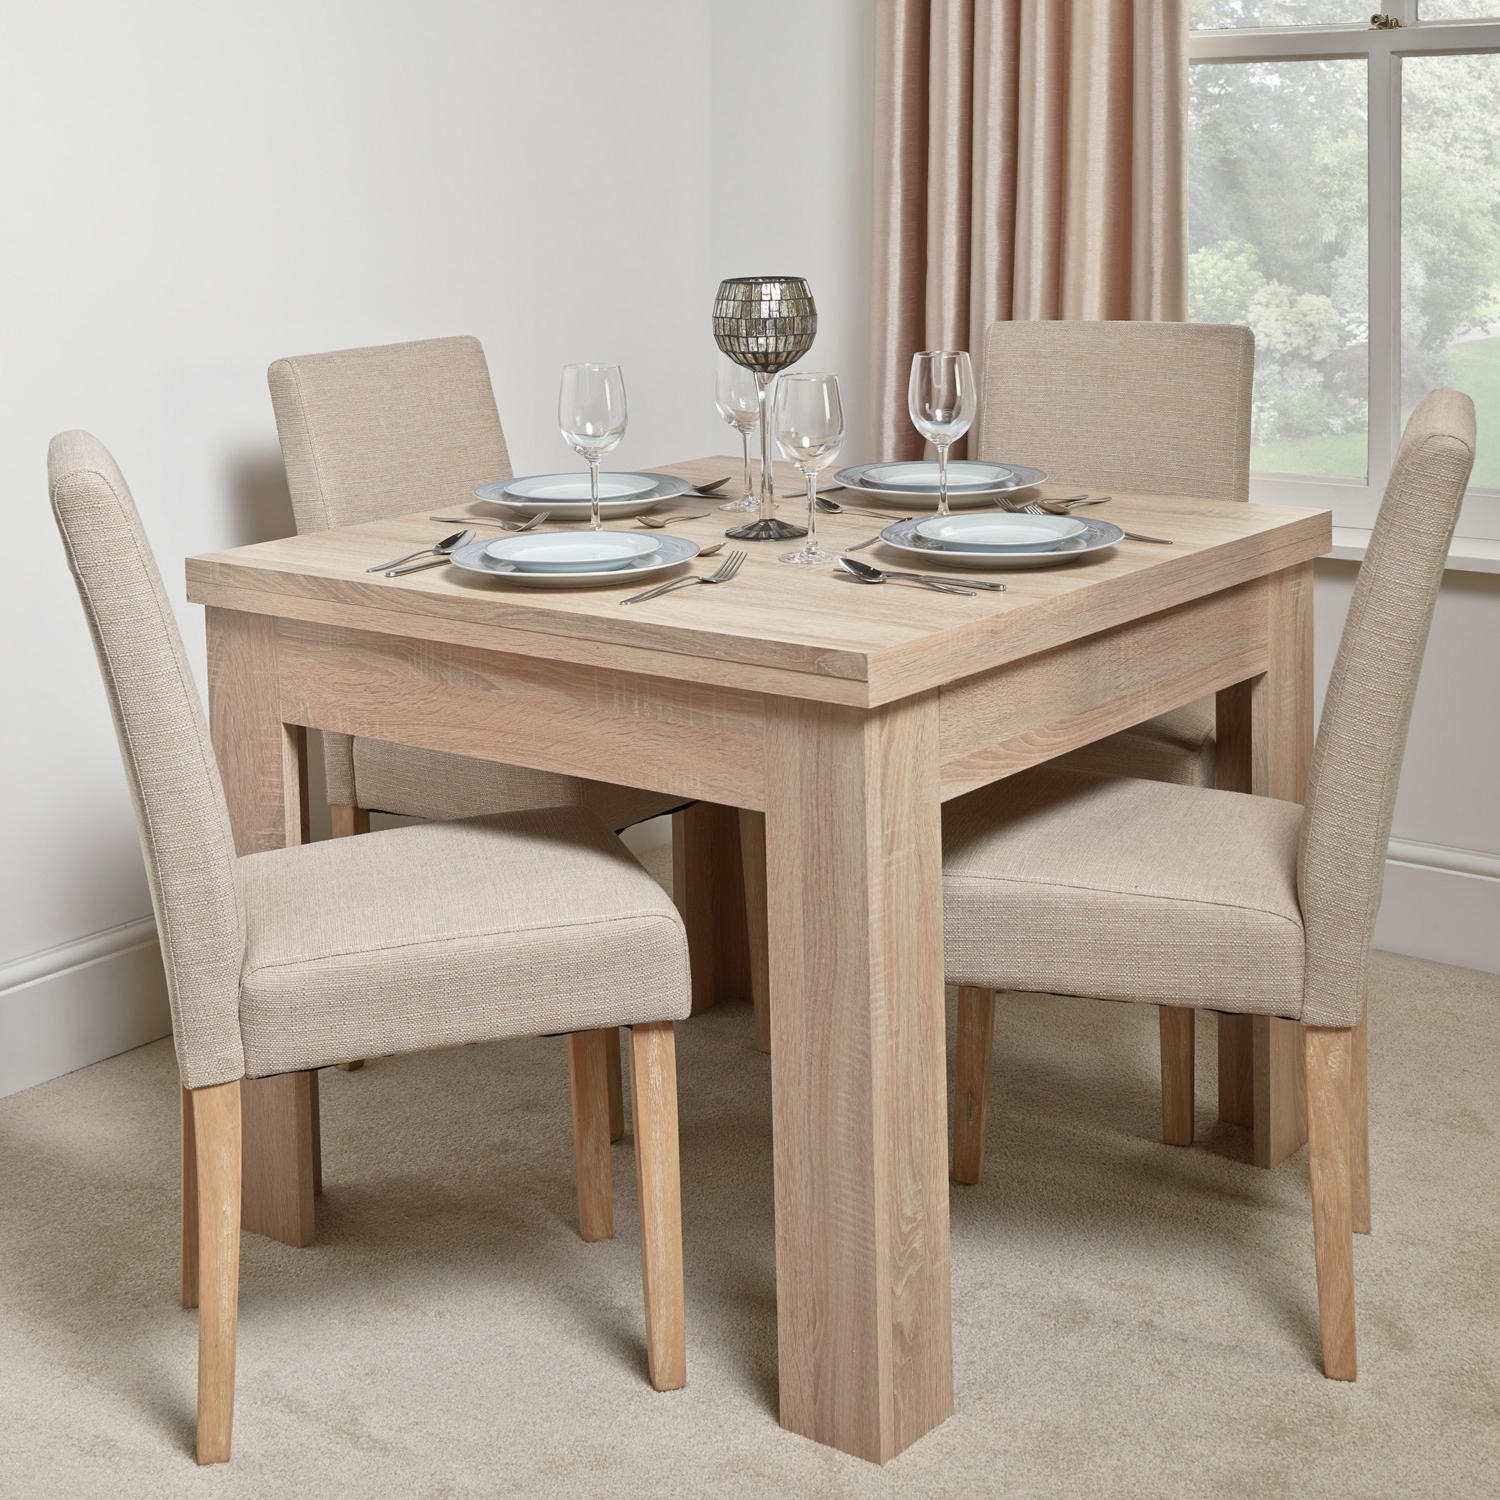 Famous Calpe Flip Extending Dining Table Within Extendable Dining Table And 4 Chairs (View 4 of 25)